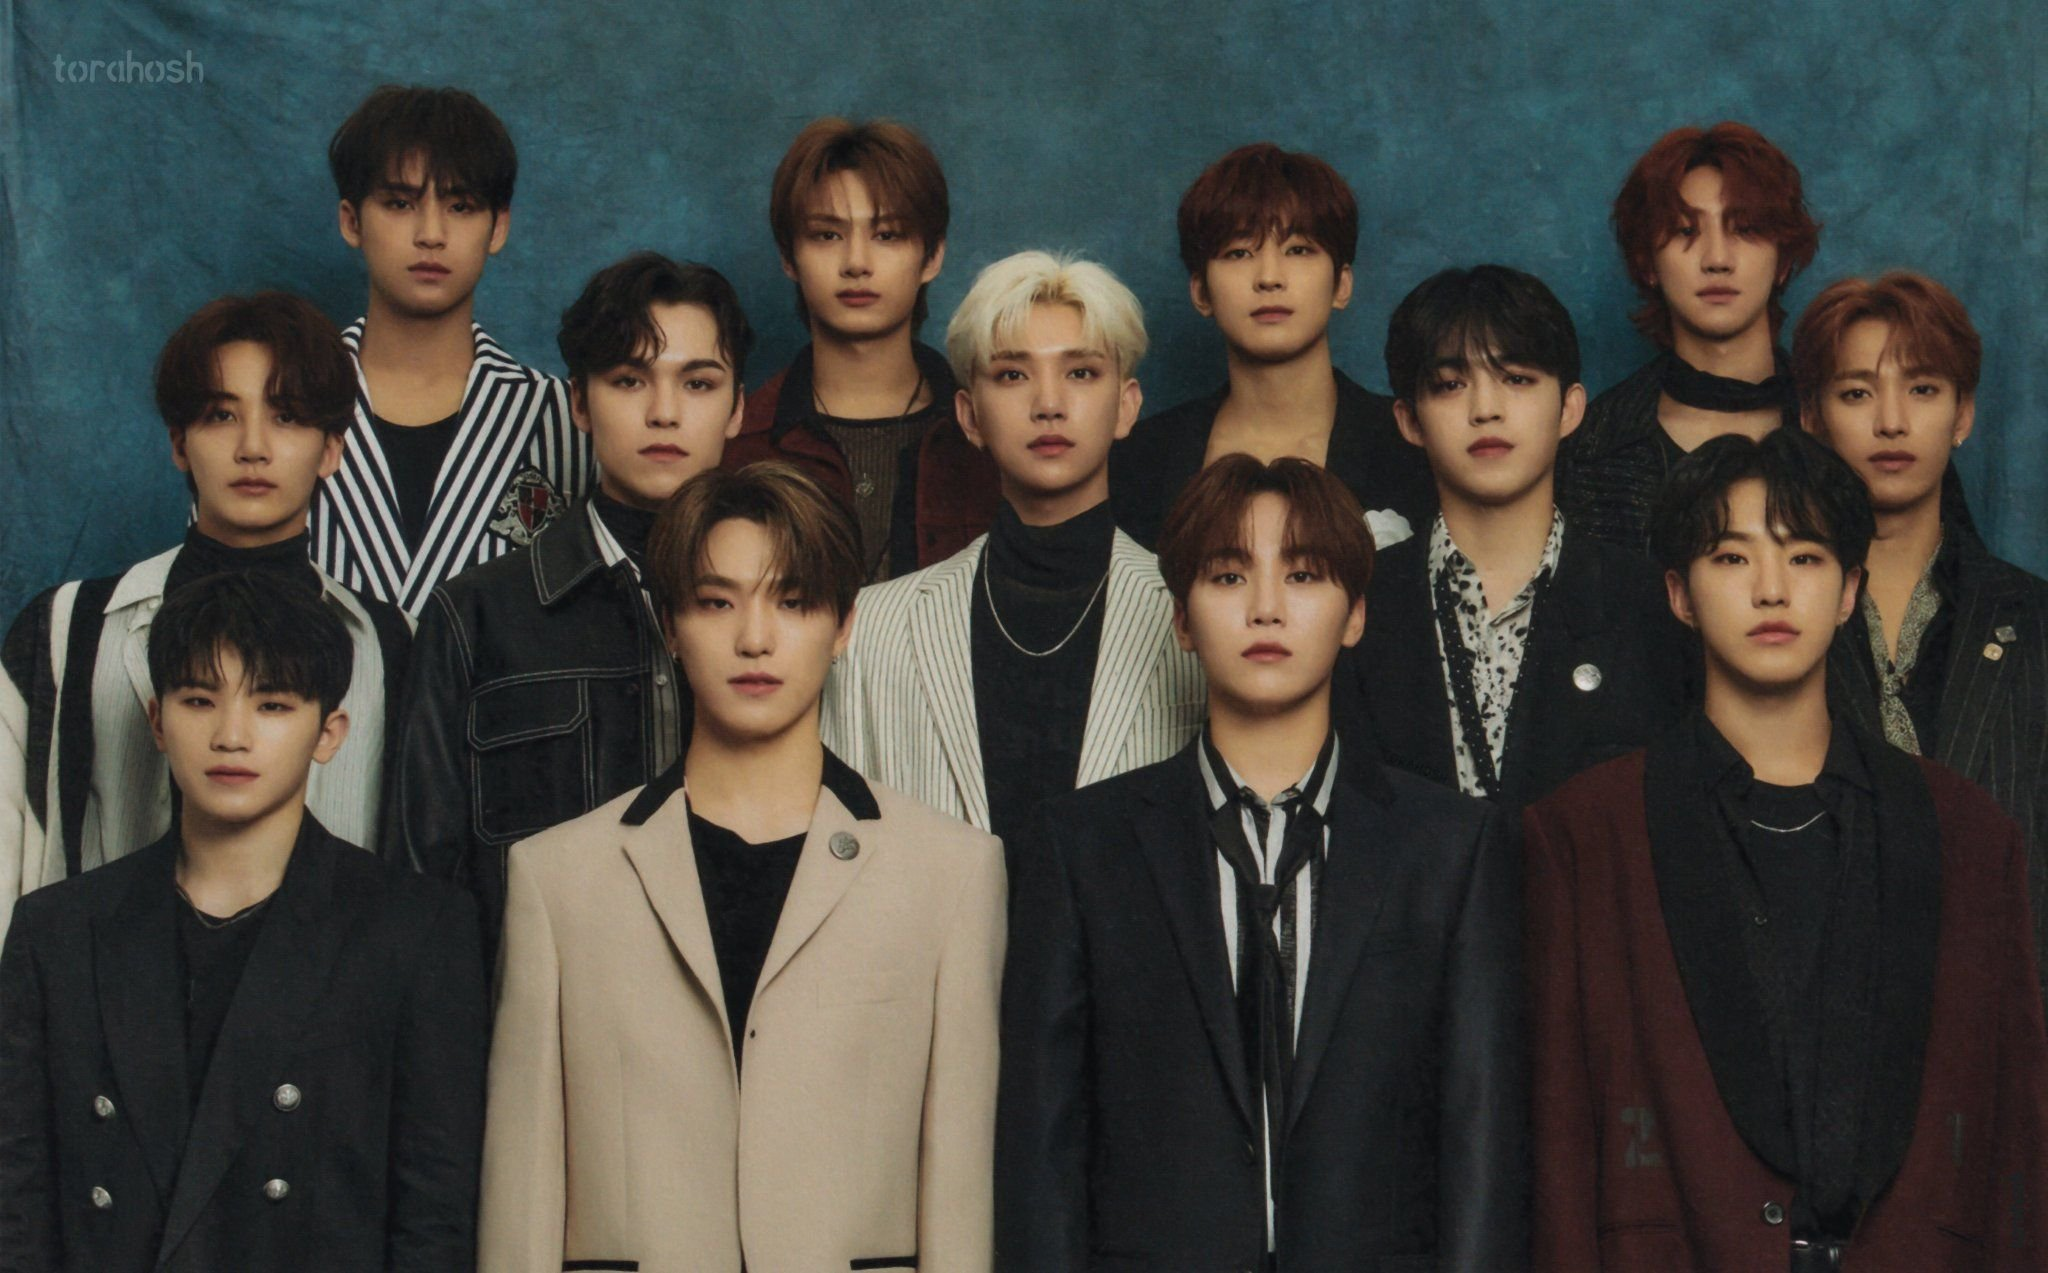 Fact Music Awards 2021 Lineup Revealed Performers' List ft. BTS, Stray Kids, Ateez